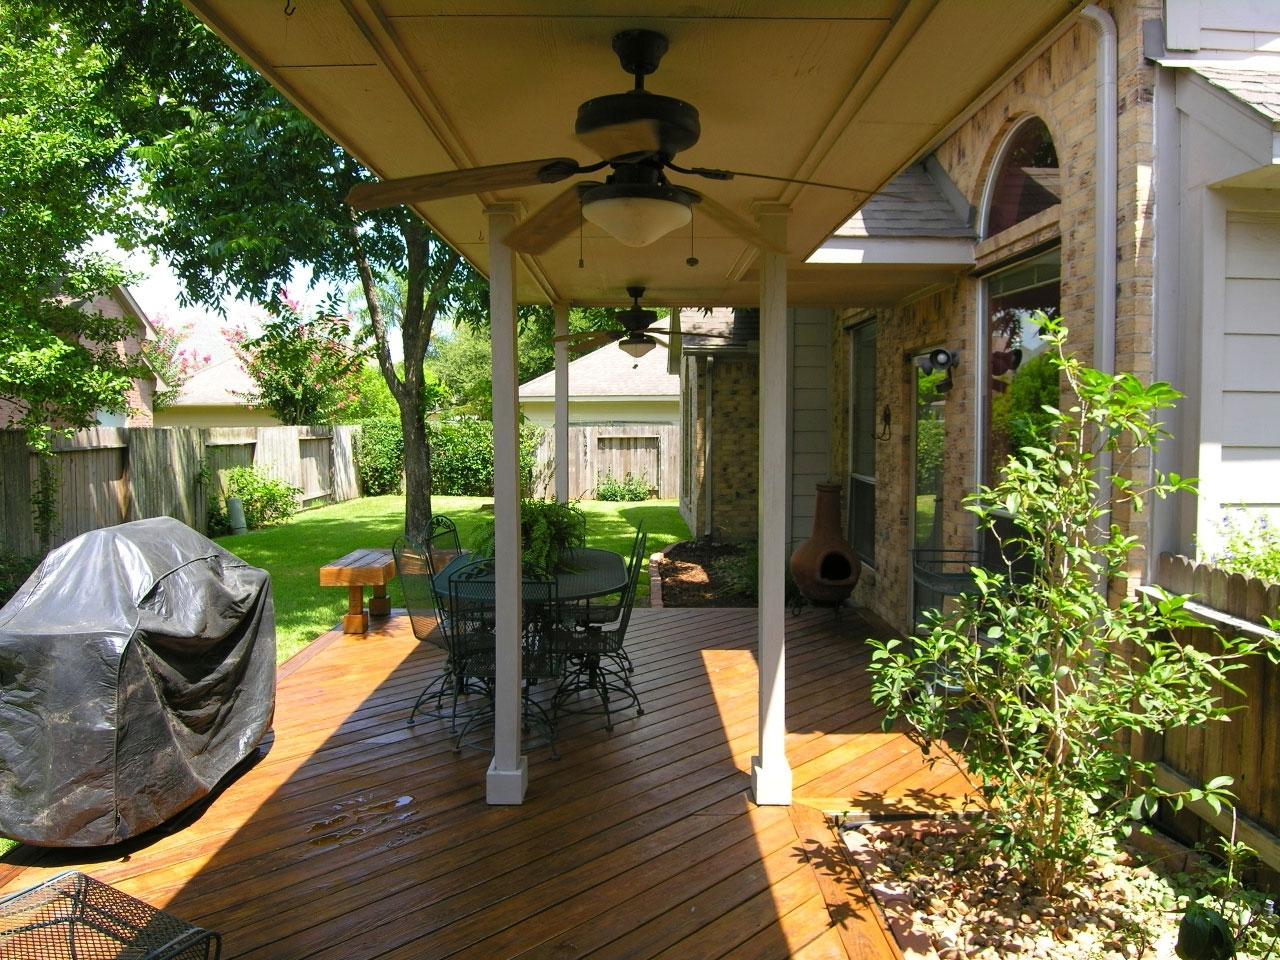 Outdoor Porch Ceiling Fans With Lights Inch Fan Door Ideas Hunter Pertaining To Most Up To Date Outdoor Ceiling Fans For Decks (View 16 of 20)